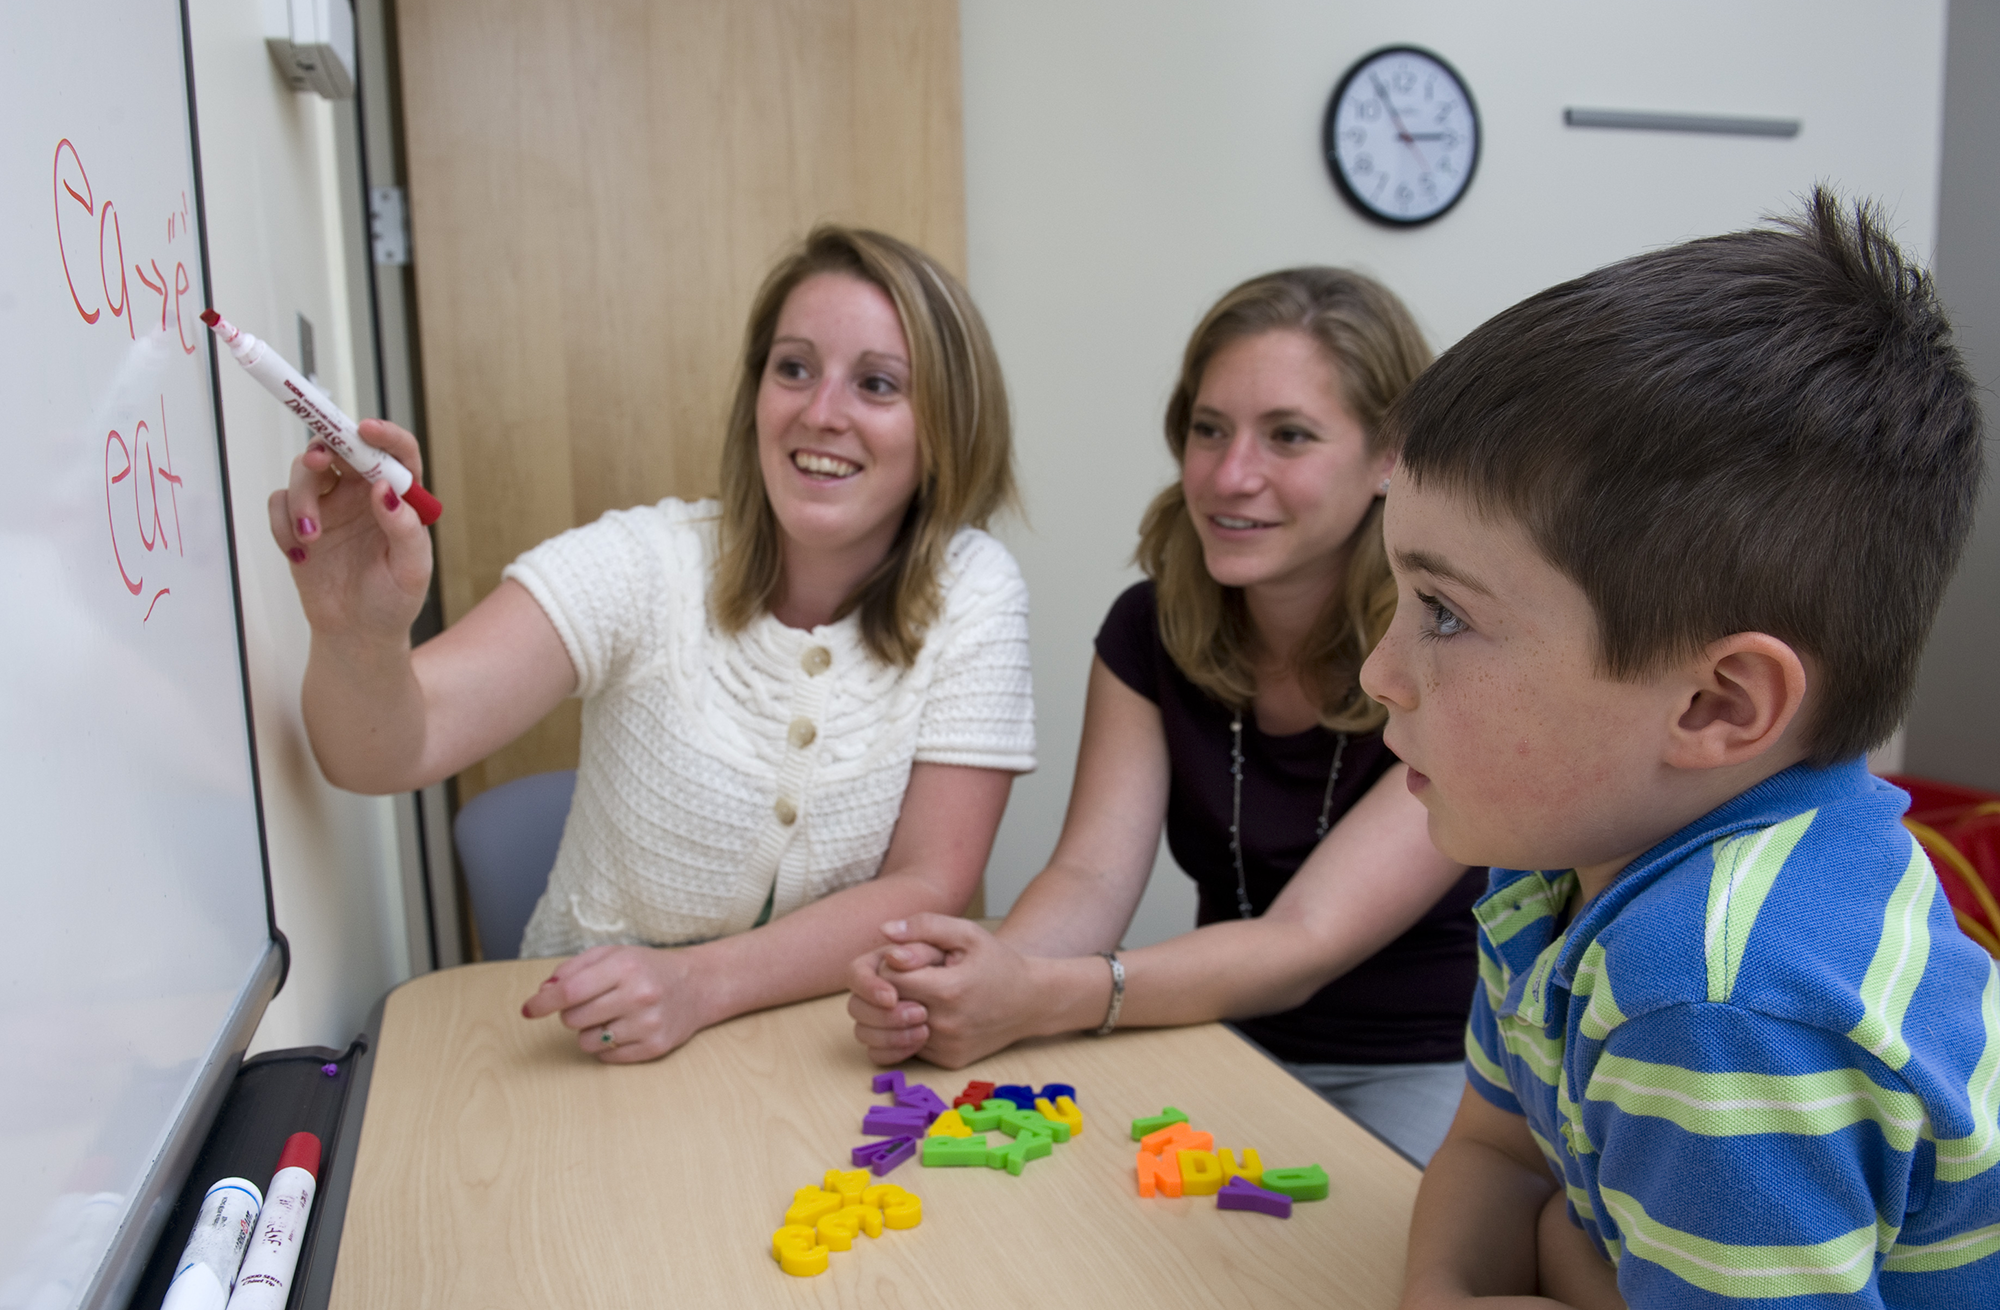 MS-SLP students in a clinical setting in a school